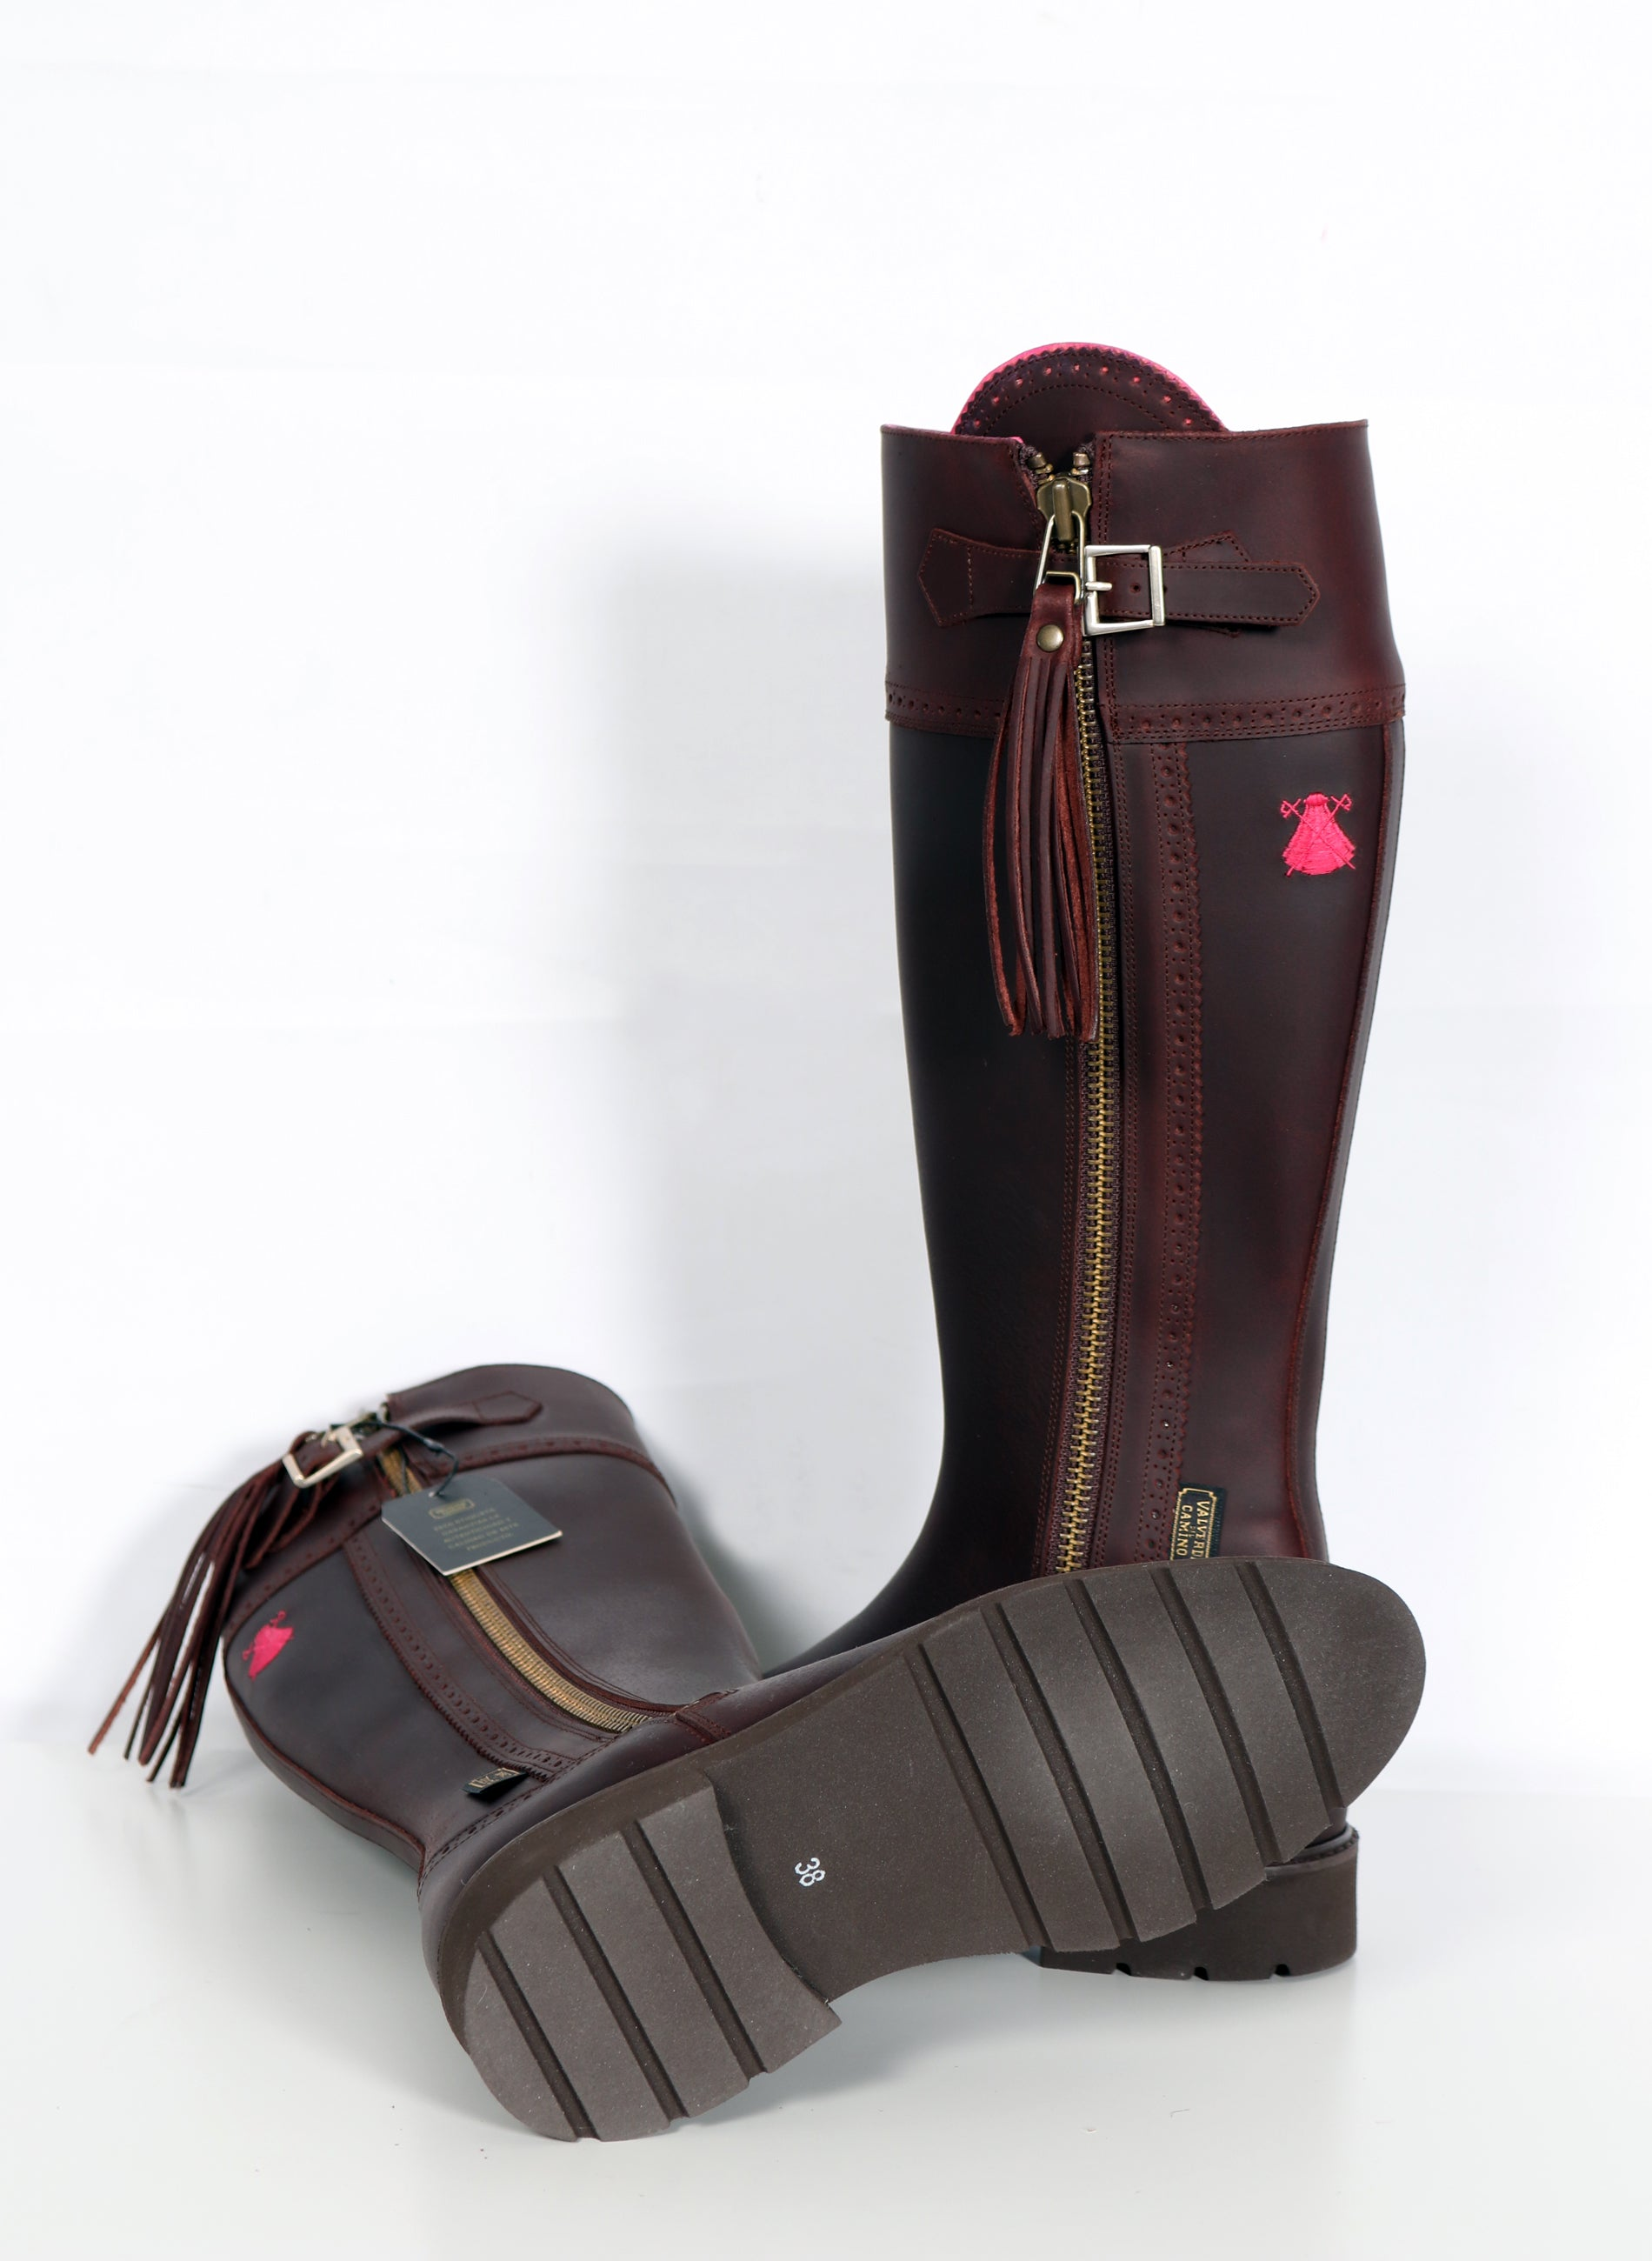 Hunting Boots for Women Valverde del Camino